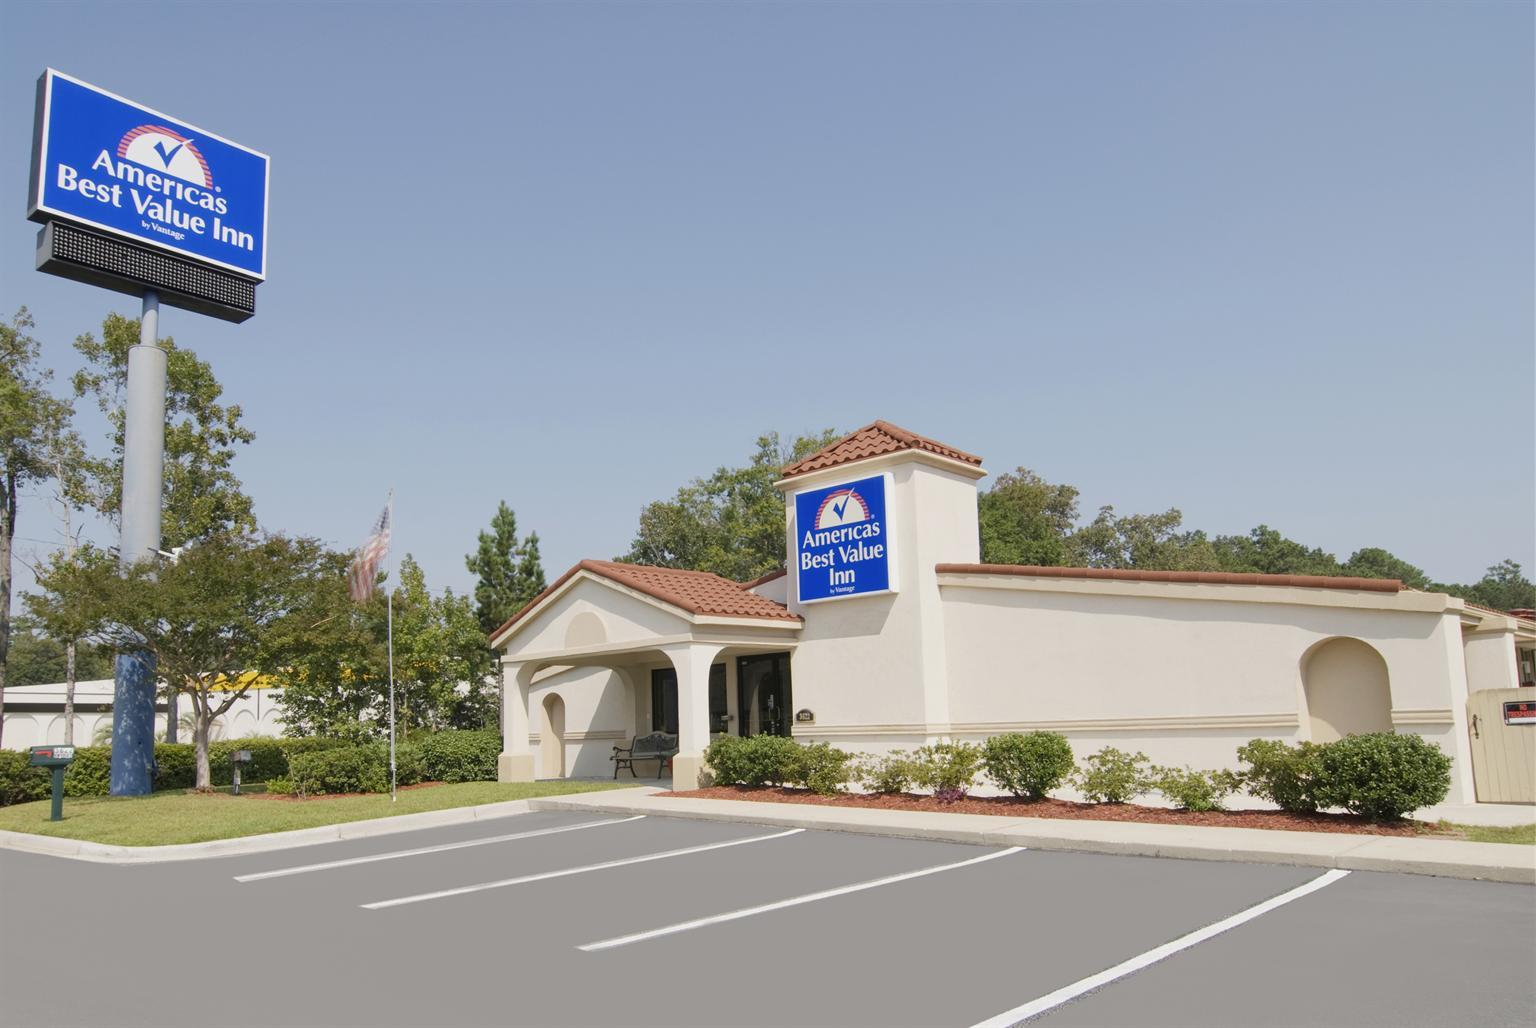 Americas best value inn myrtle beach coupons near me in for Americas best coupon code